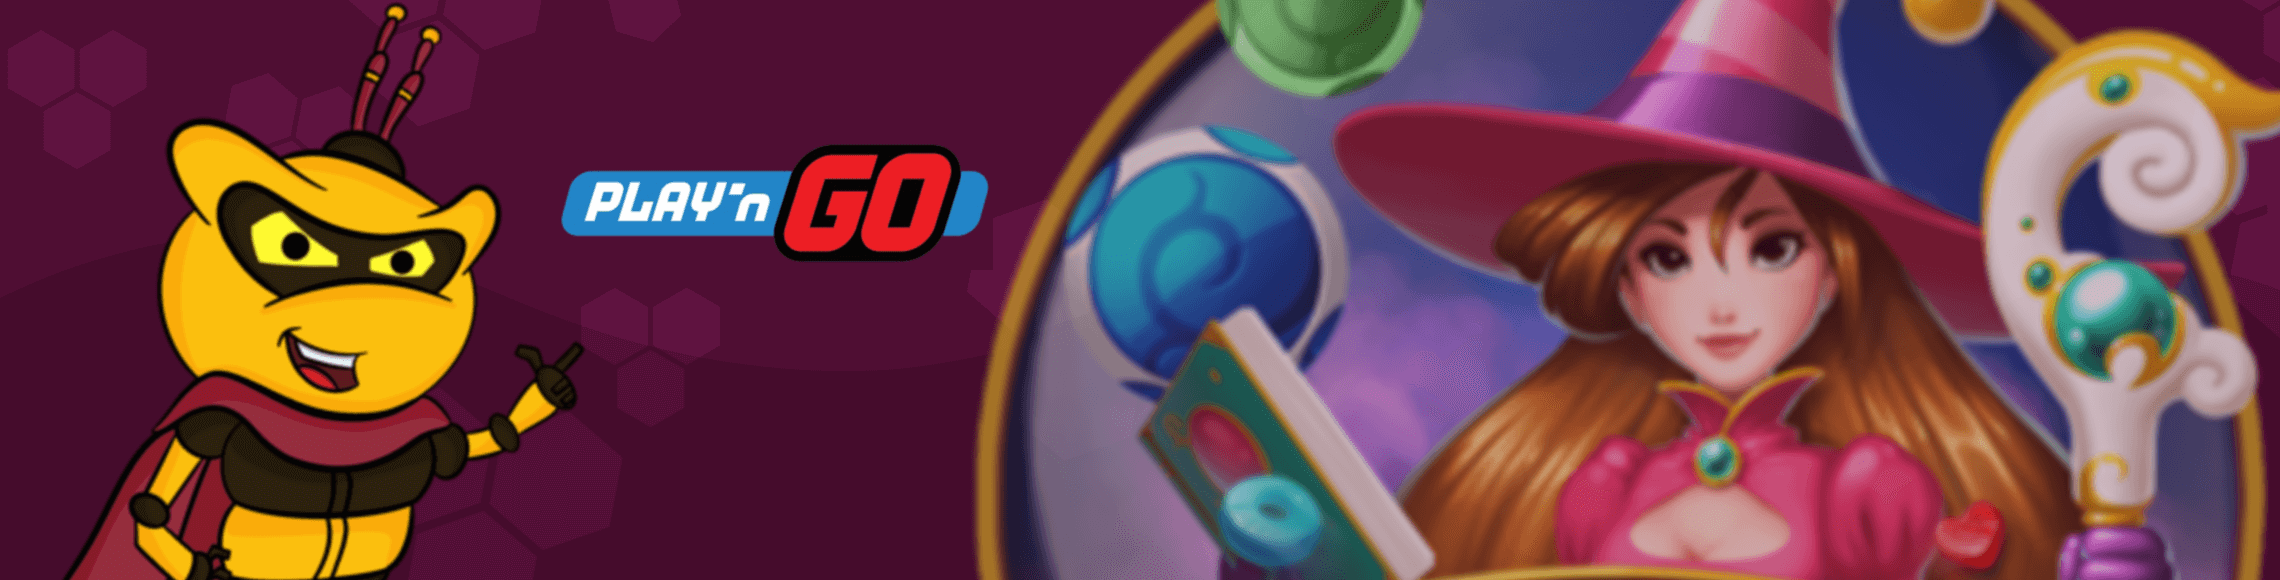 Top Play'n GO Casino Games